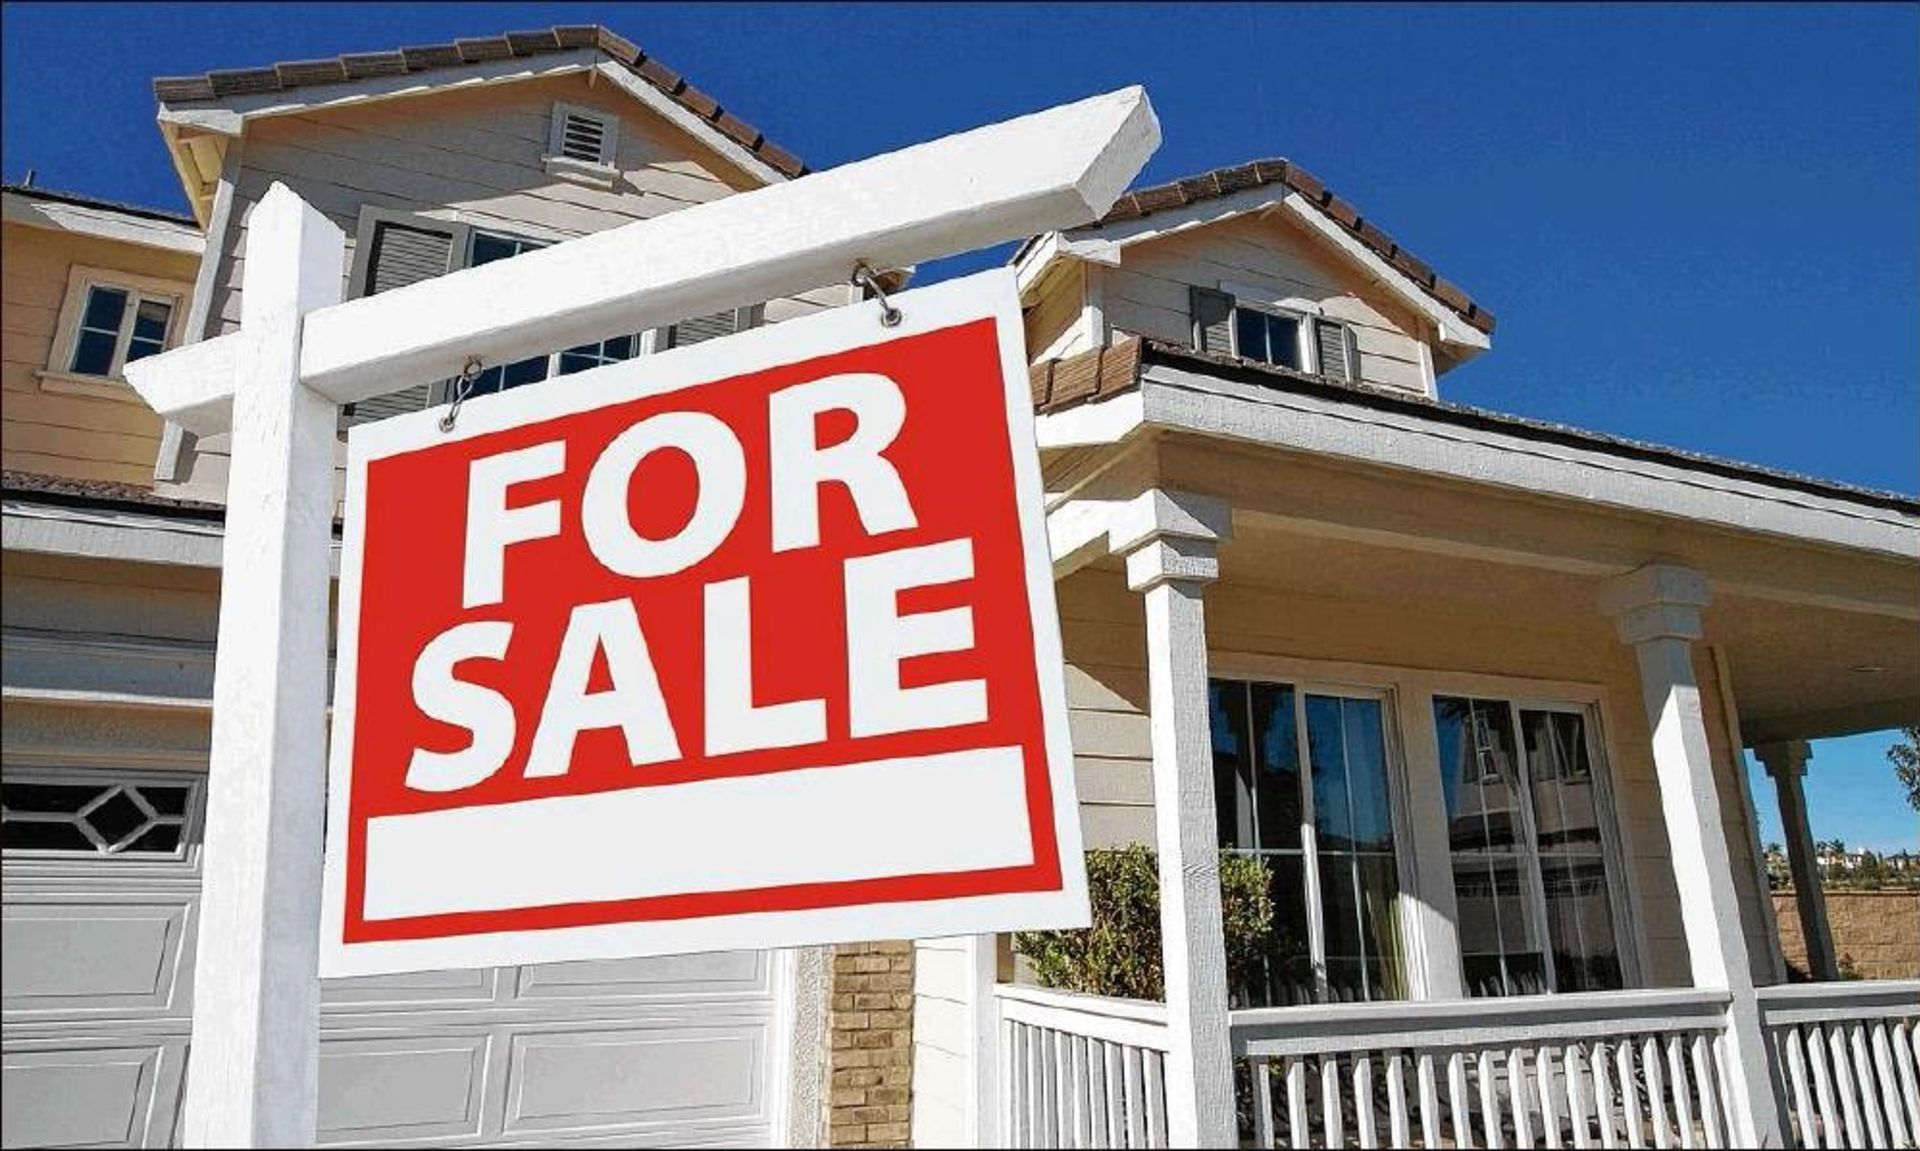 Agents to Sellers: Don't Take Your House Off the Market